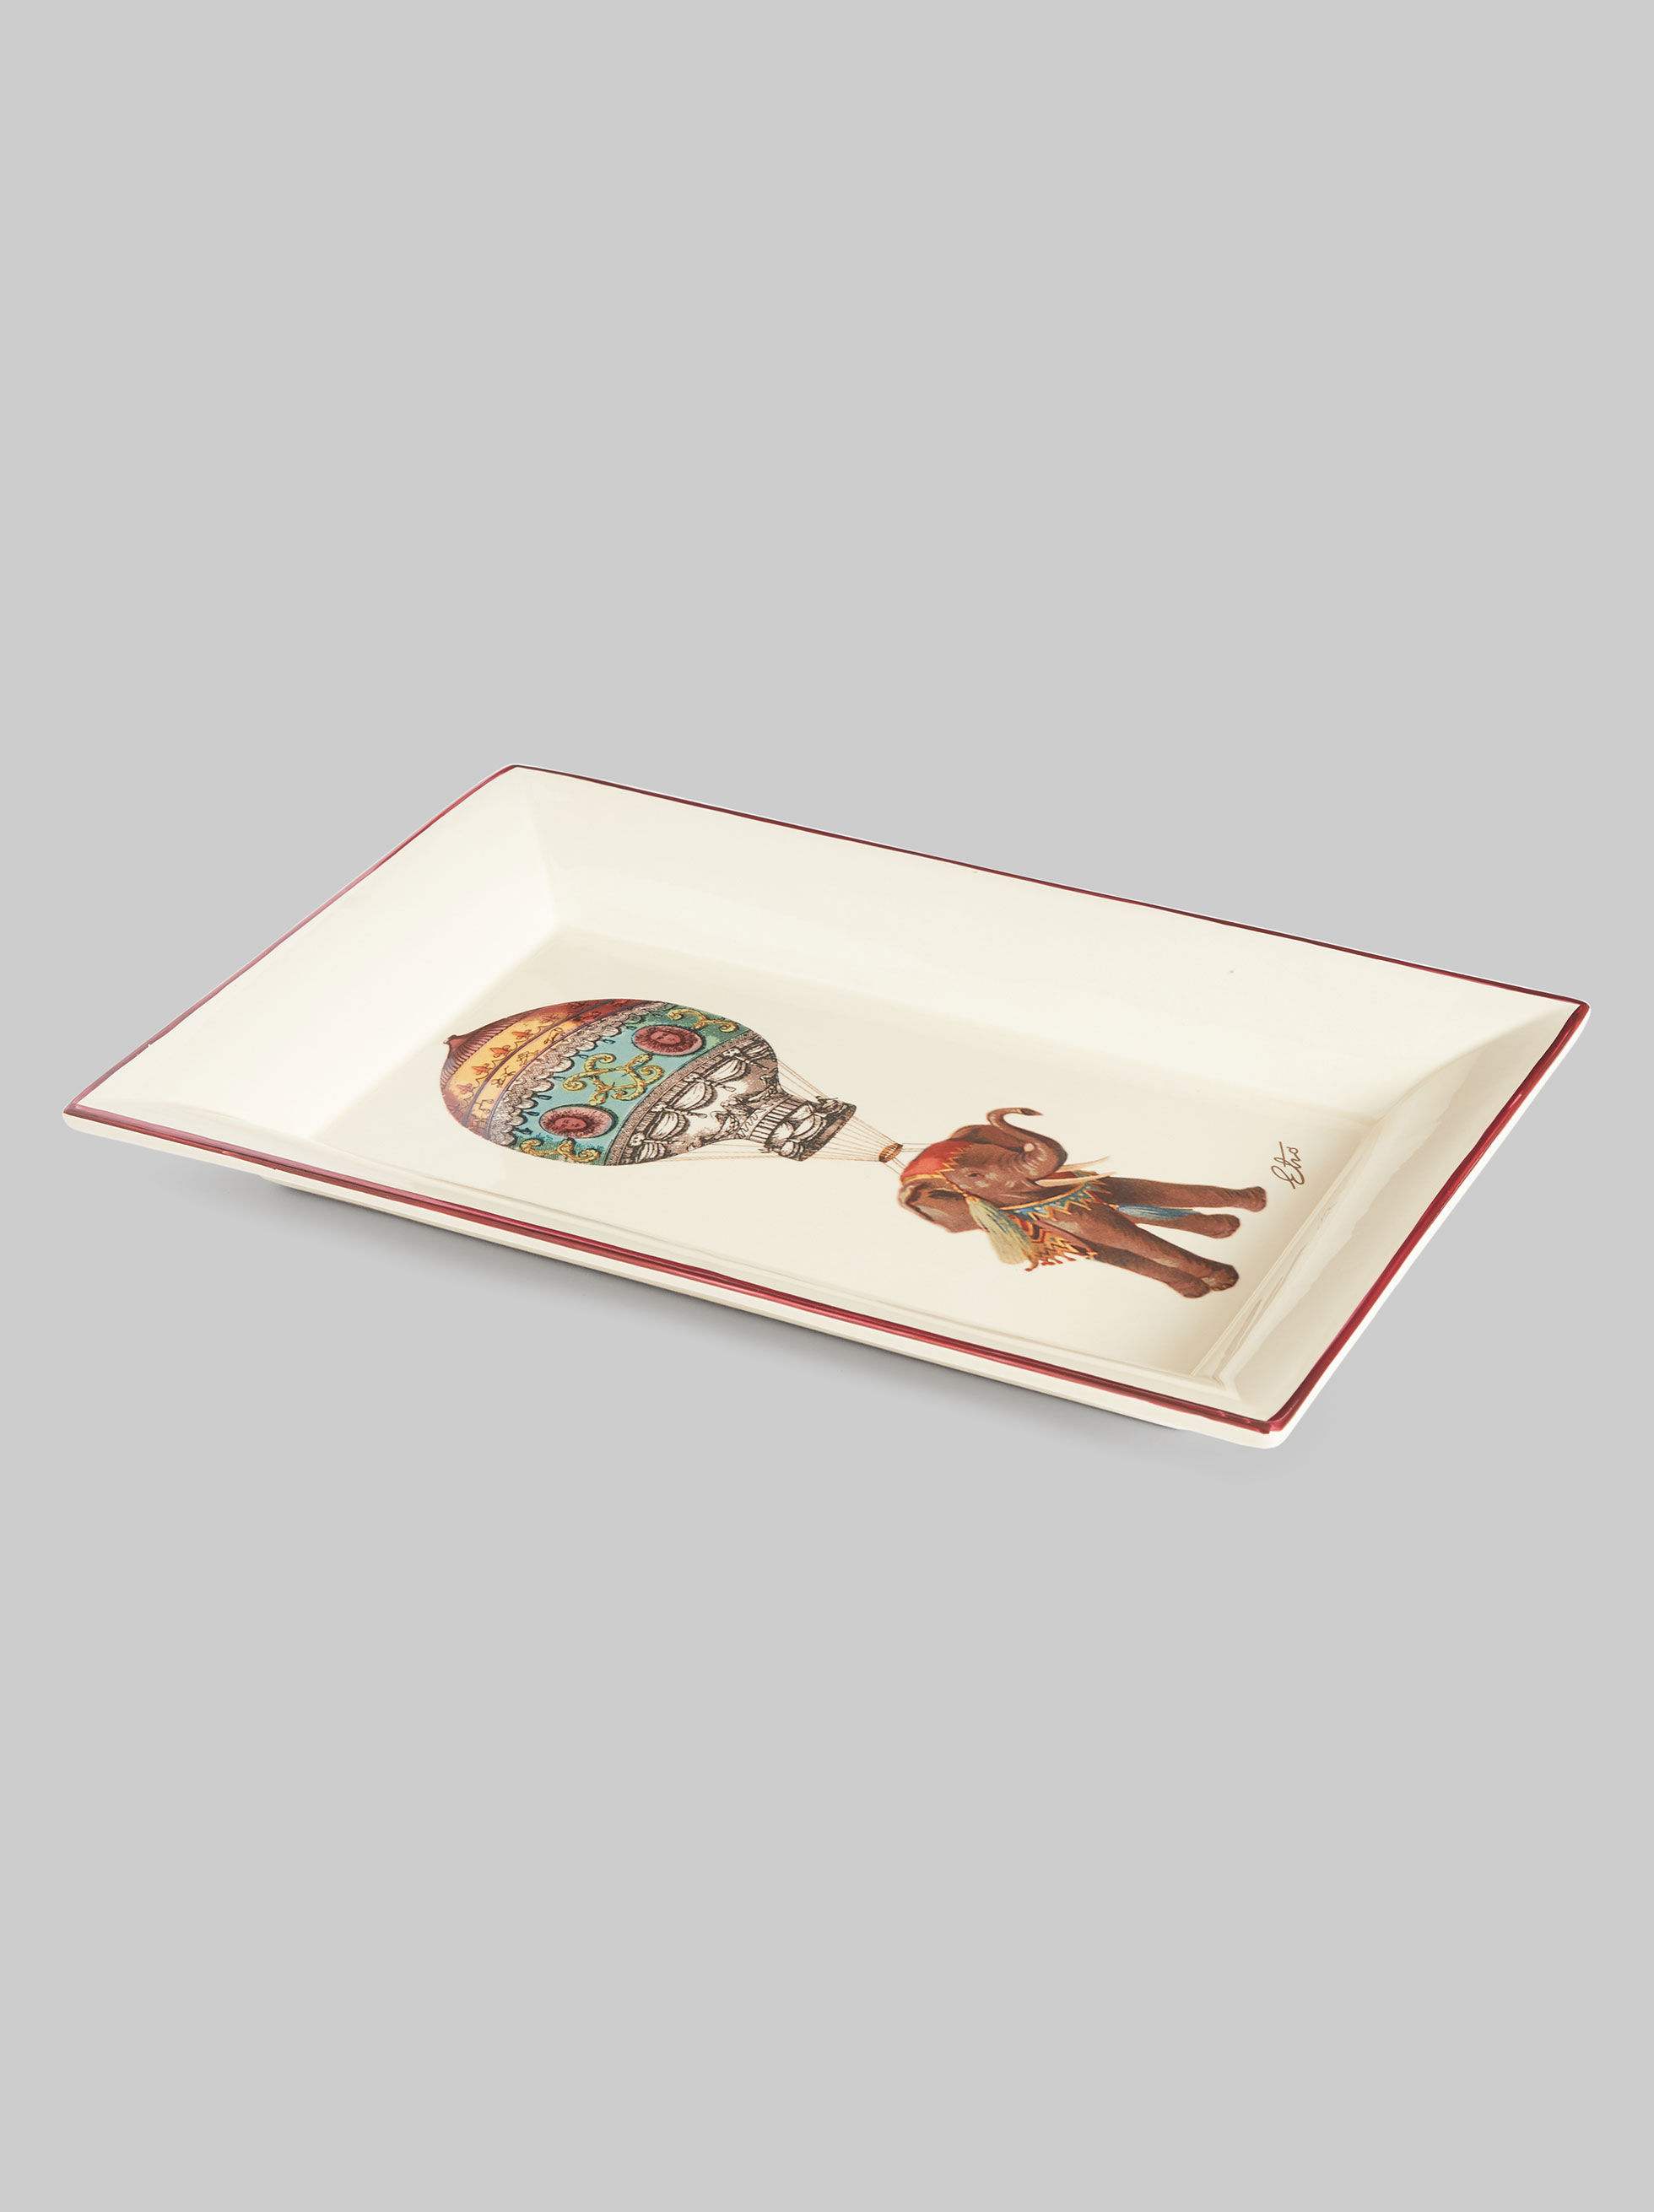 RECTANGULAR CERAMIC TRAY WITH ELEPHANT